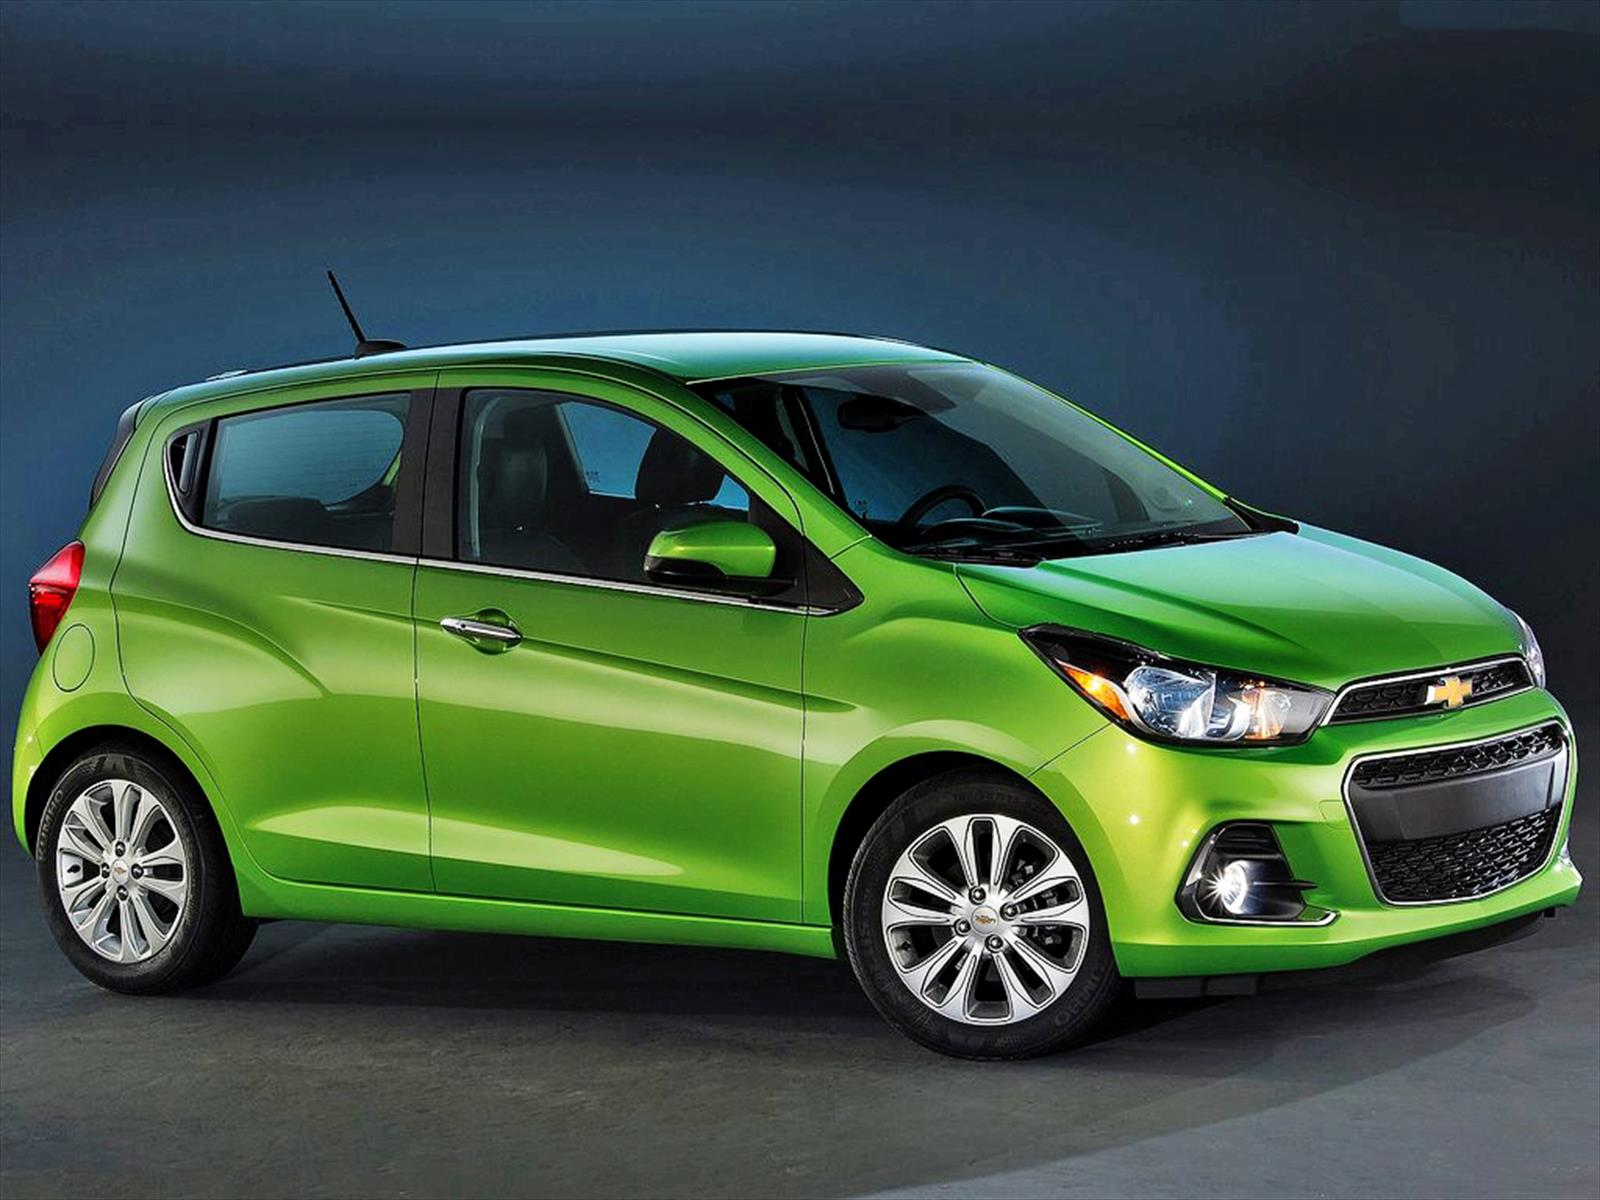 2016 Chevrolet Aveo Pictures Information And Specs